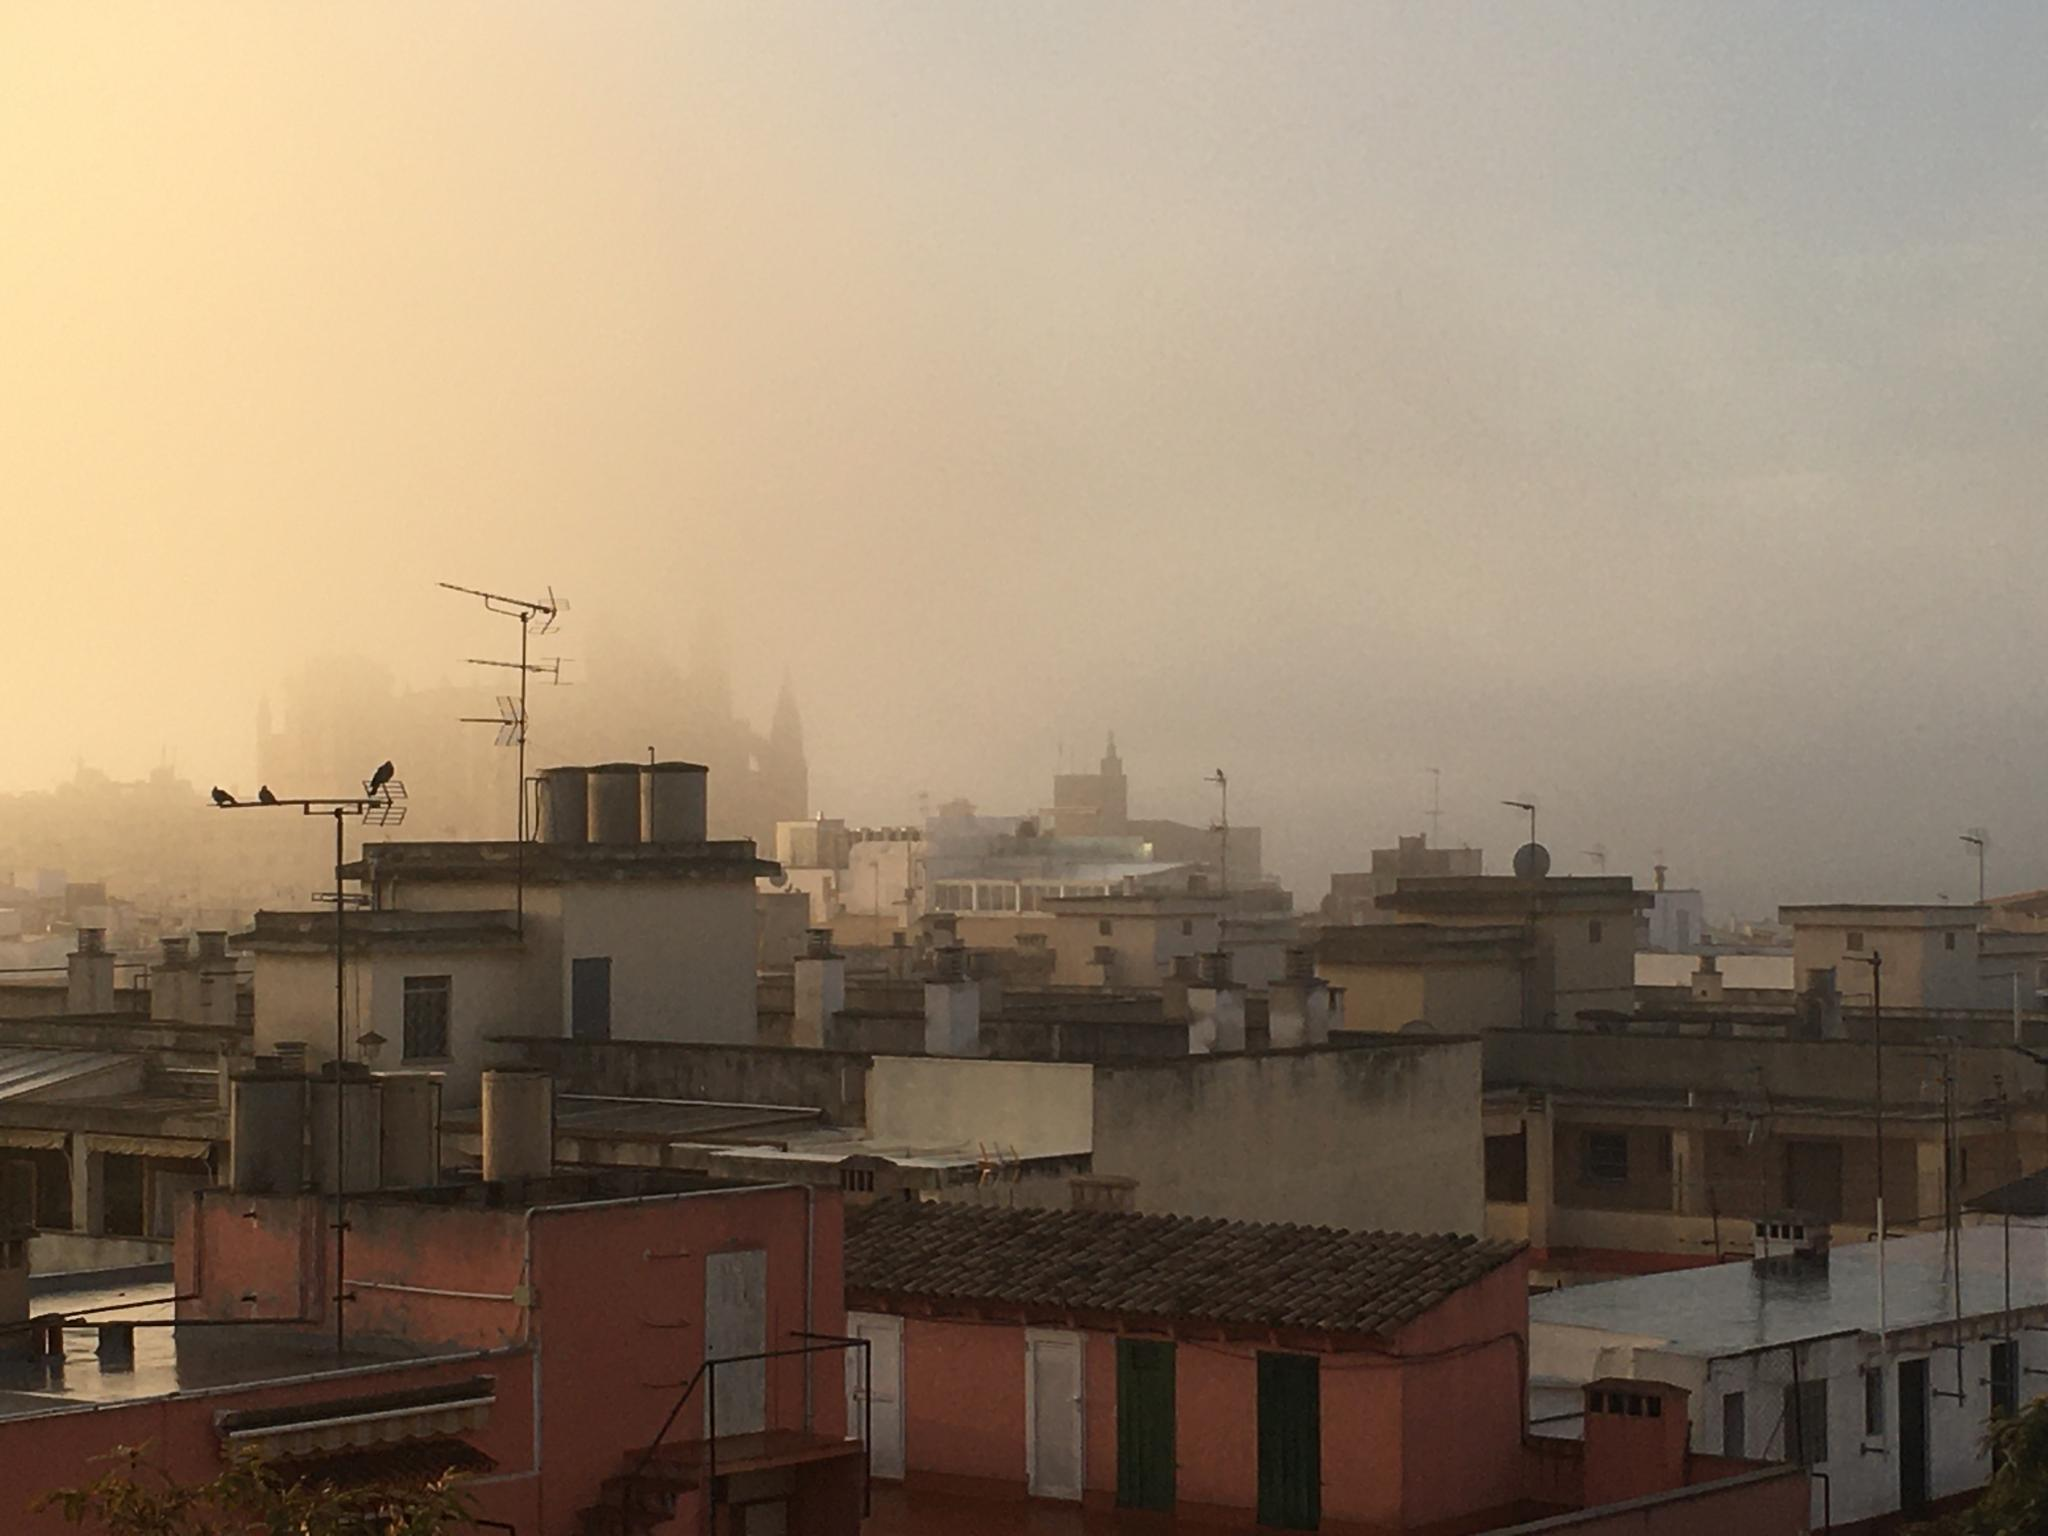 Palma Cathedral reappears as fog lifts.